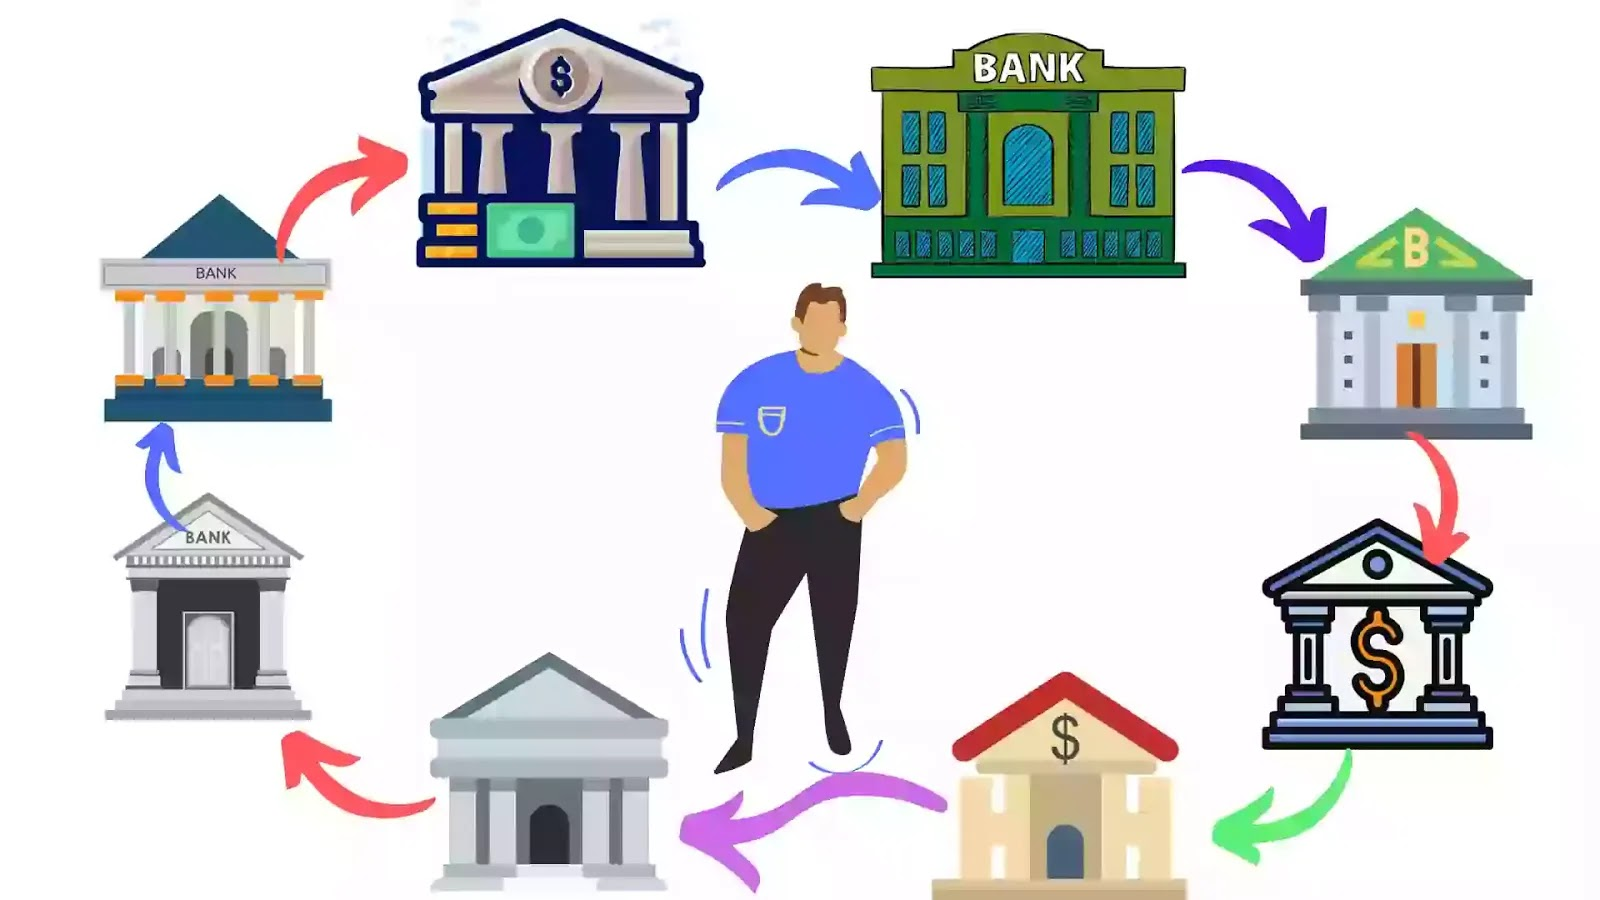 Banking System Chain